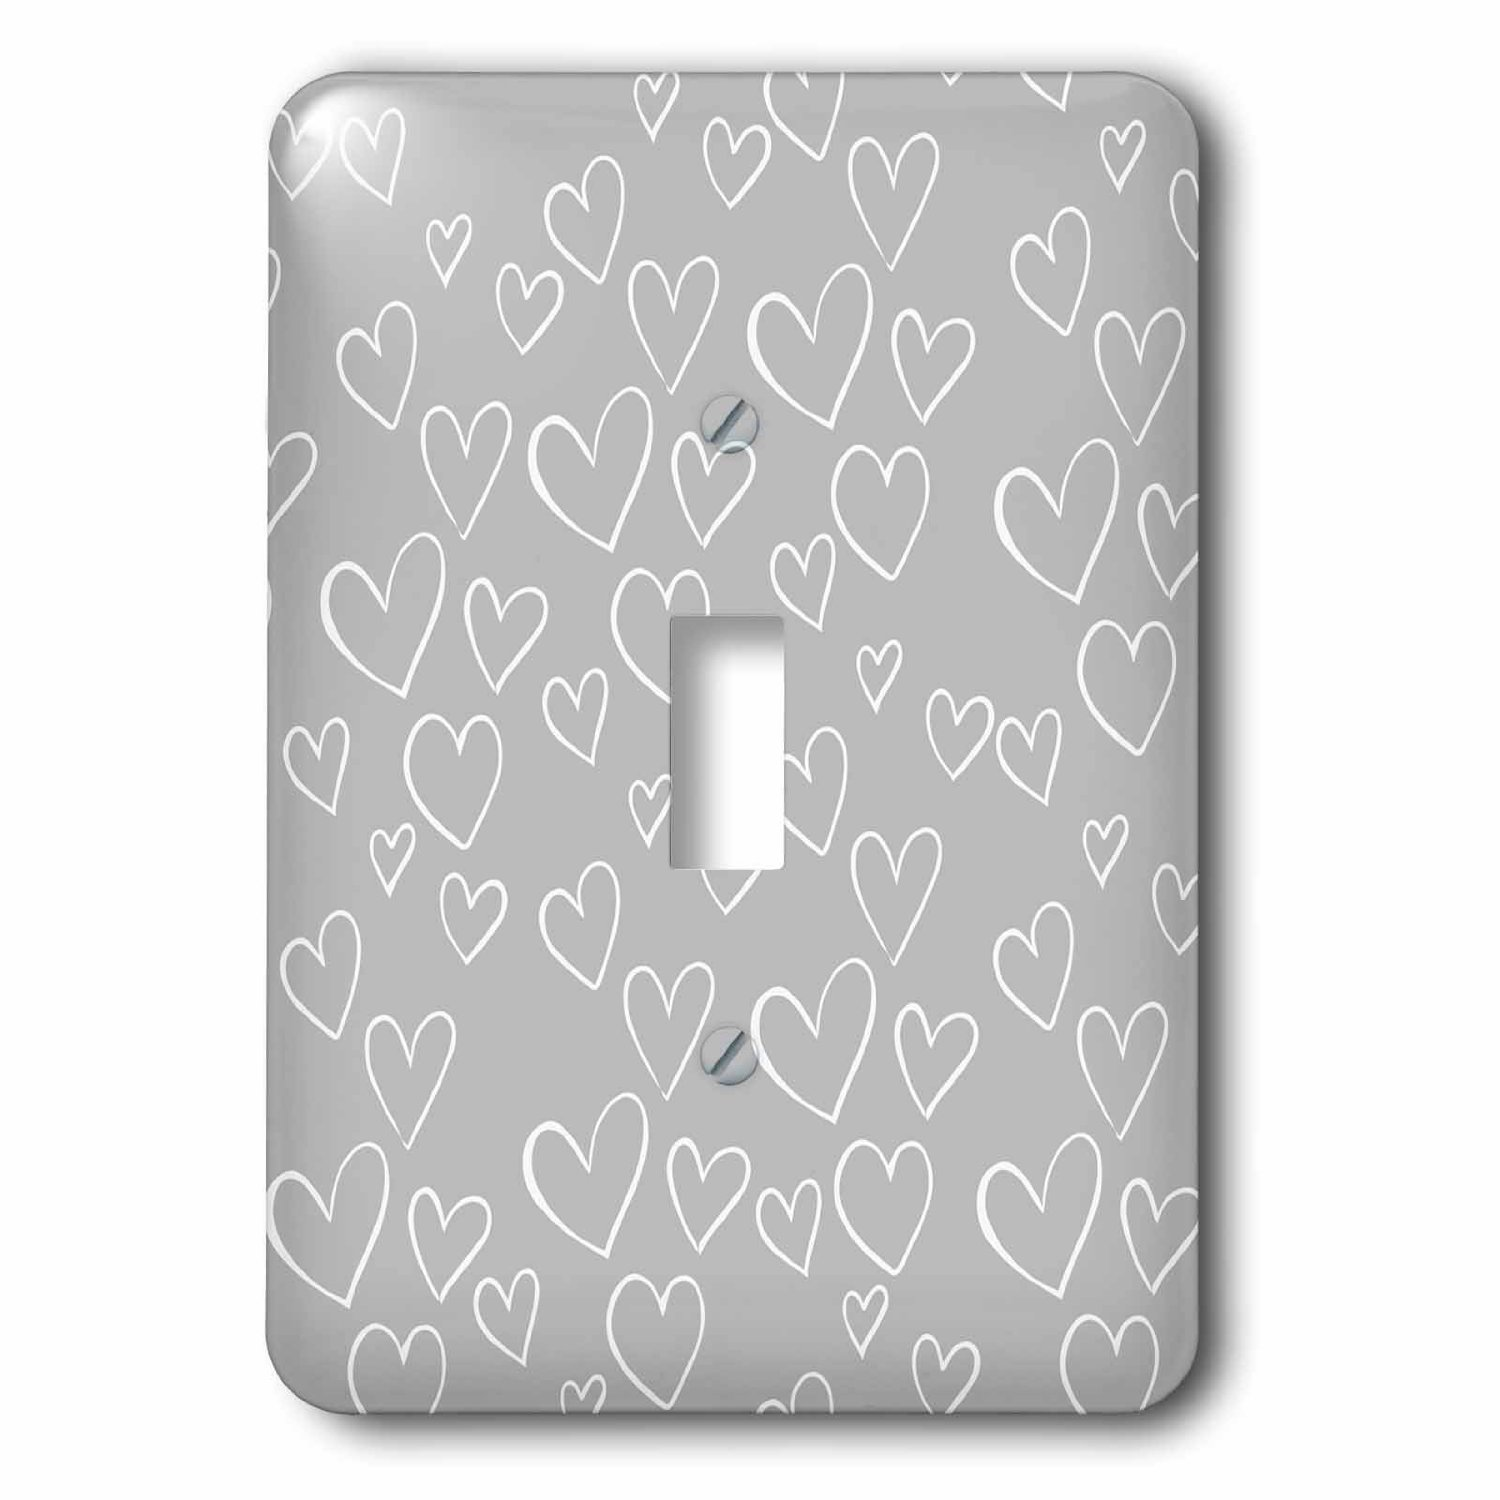 Image of 3dRose Grey and White Hearts, Single Toggle Switch